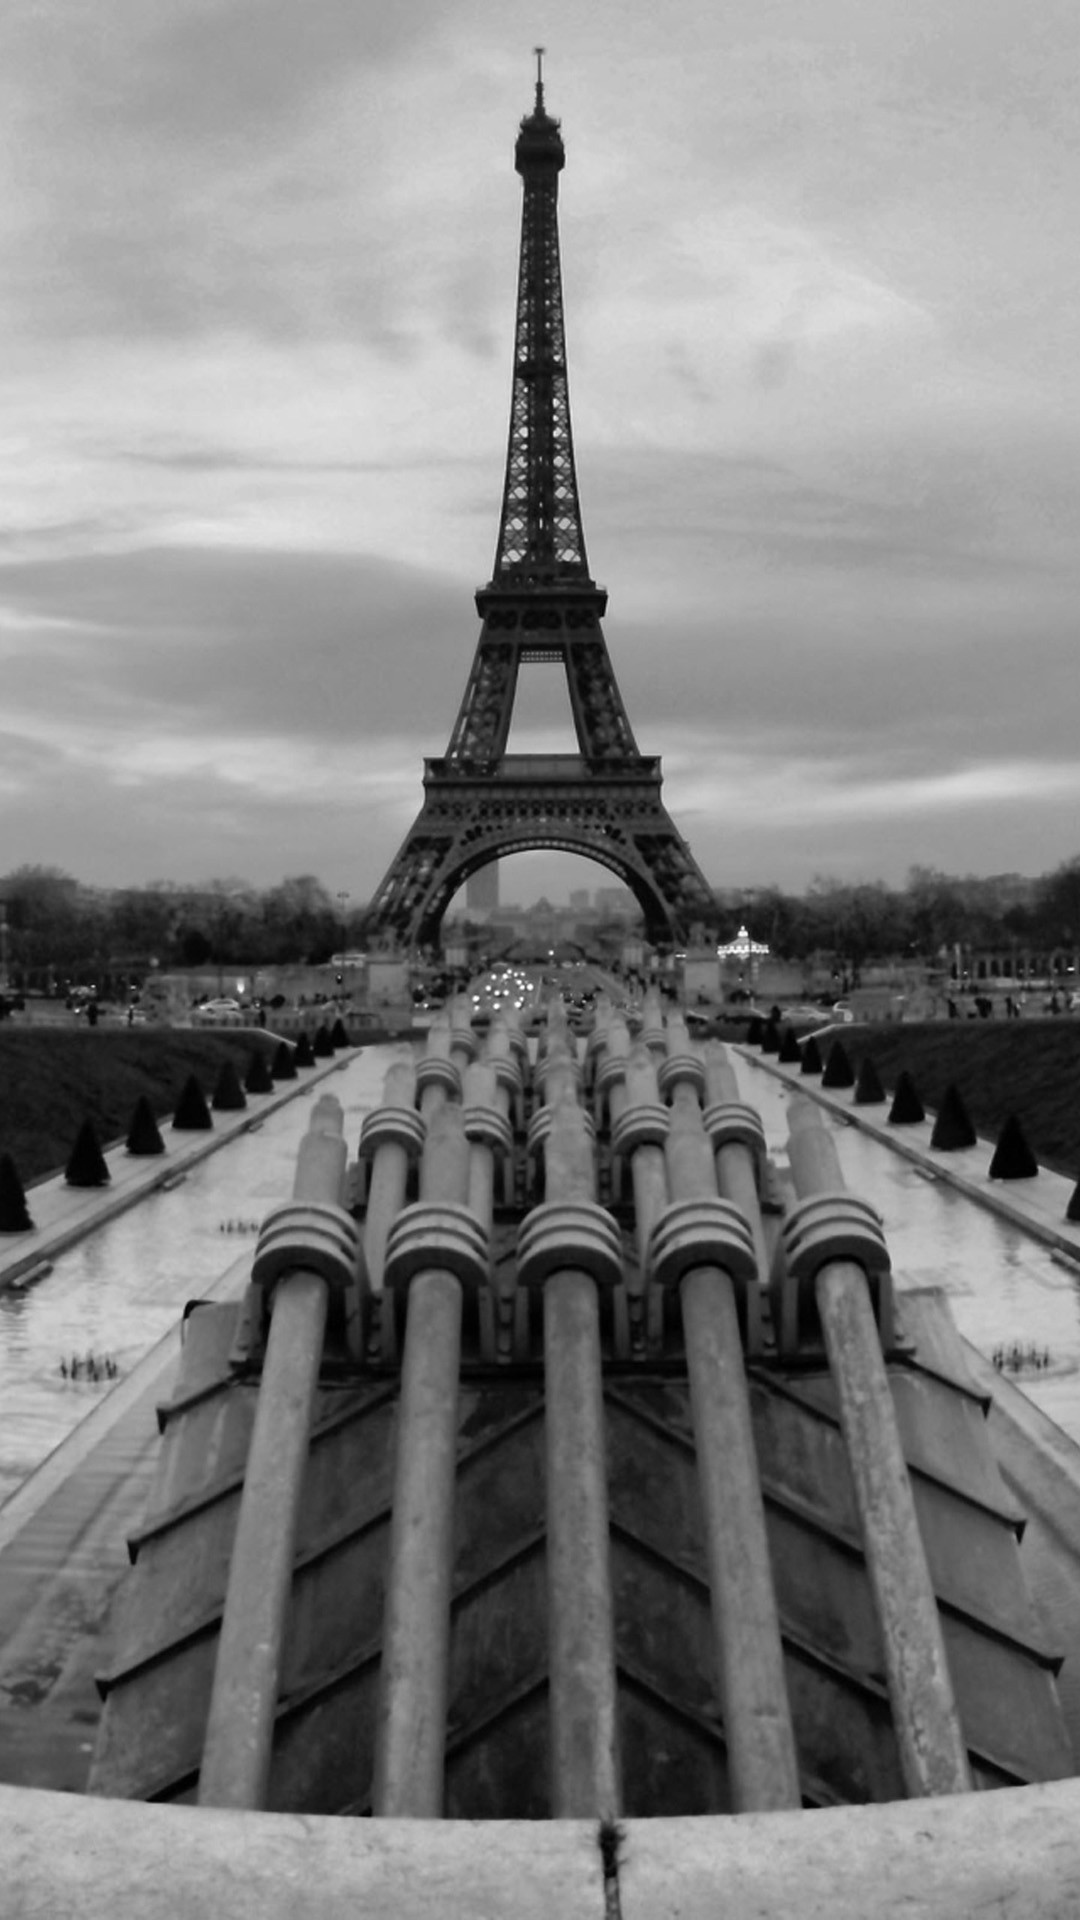 1080x1920 Eiffel Tower Paris Black White Wallpapers for Galaxy S5